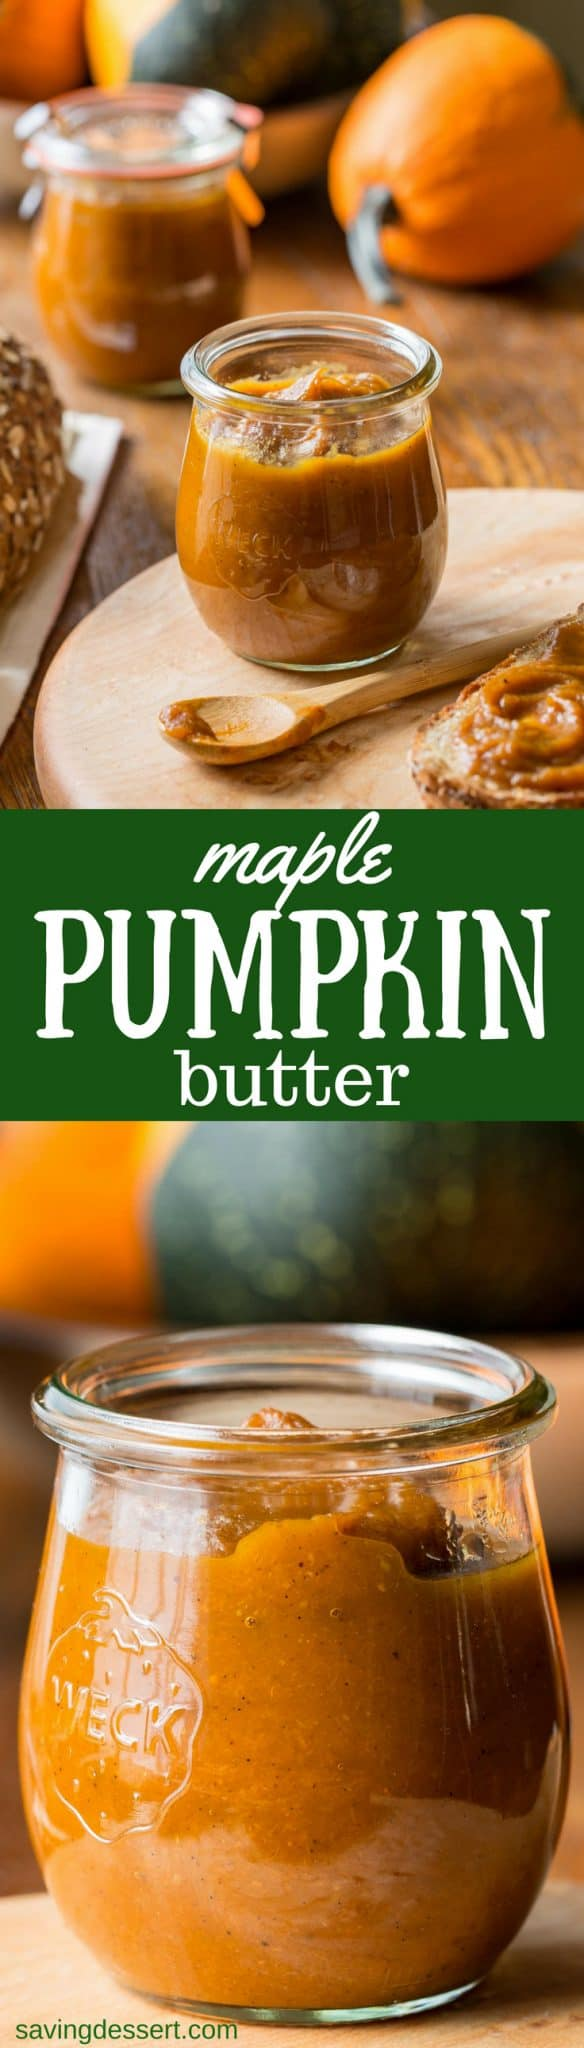 Maple Pumpkin Butter - Deliciously rich, velvety smooth, not too sweet, and perfectly wonderful slathered on toast, biscuits, muffins, pancakes, waffles or stirred into your morning oatmeal. www.savingdessert.com #savingroomfordessert #maple #pumpkin #pumpkinbutter #butter